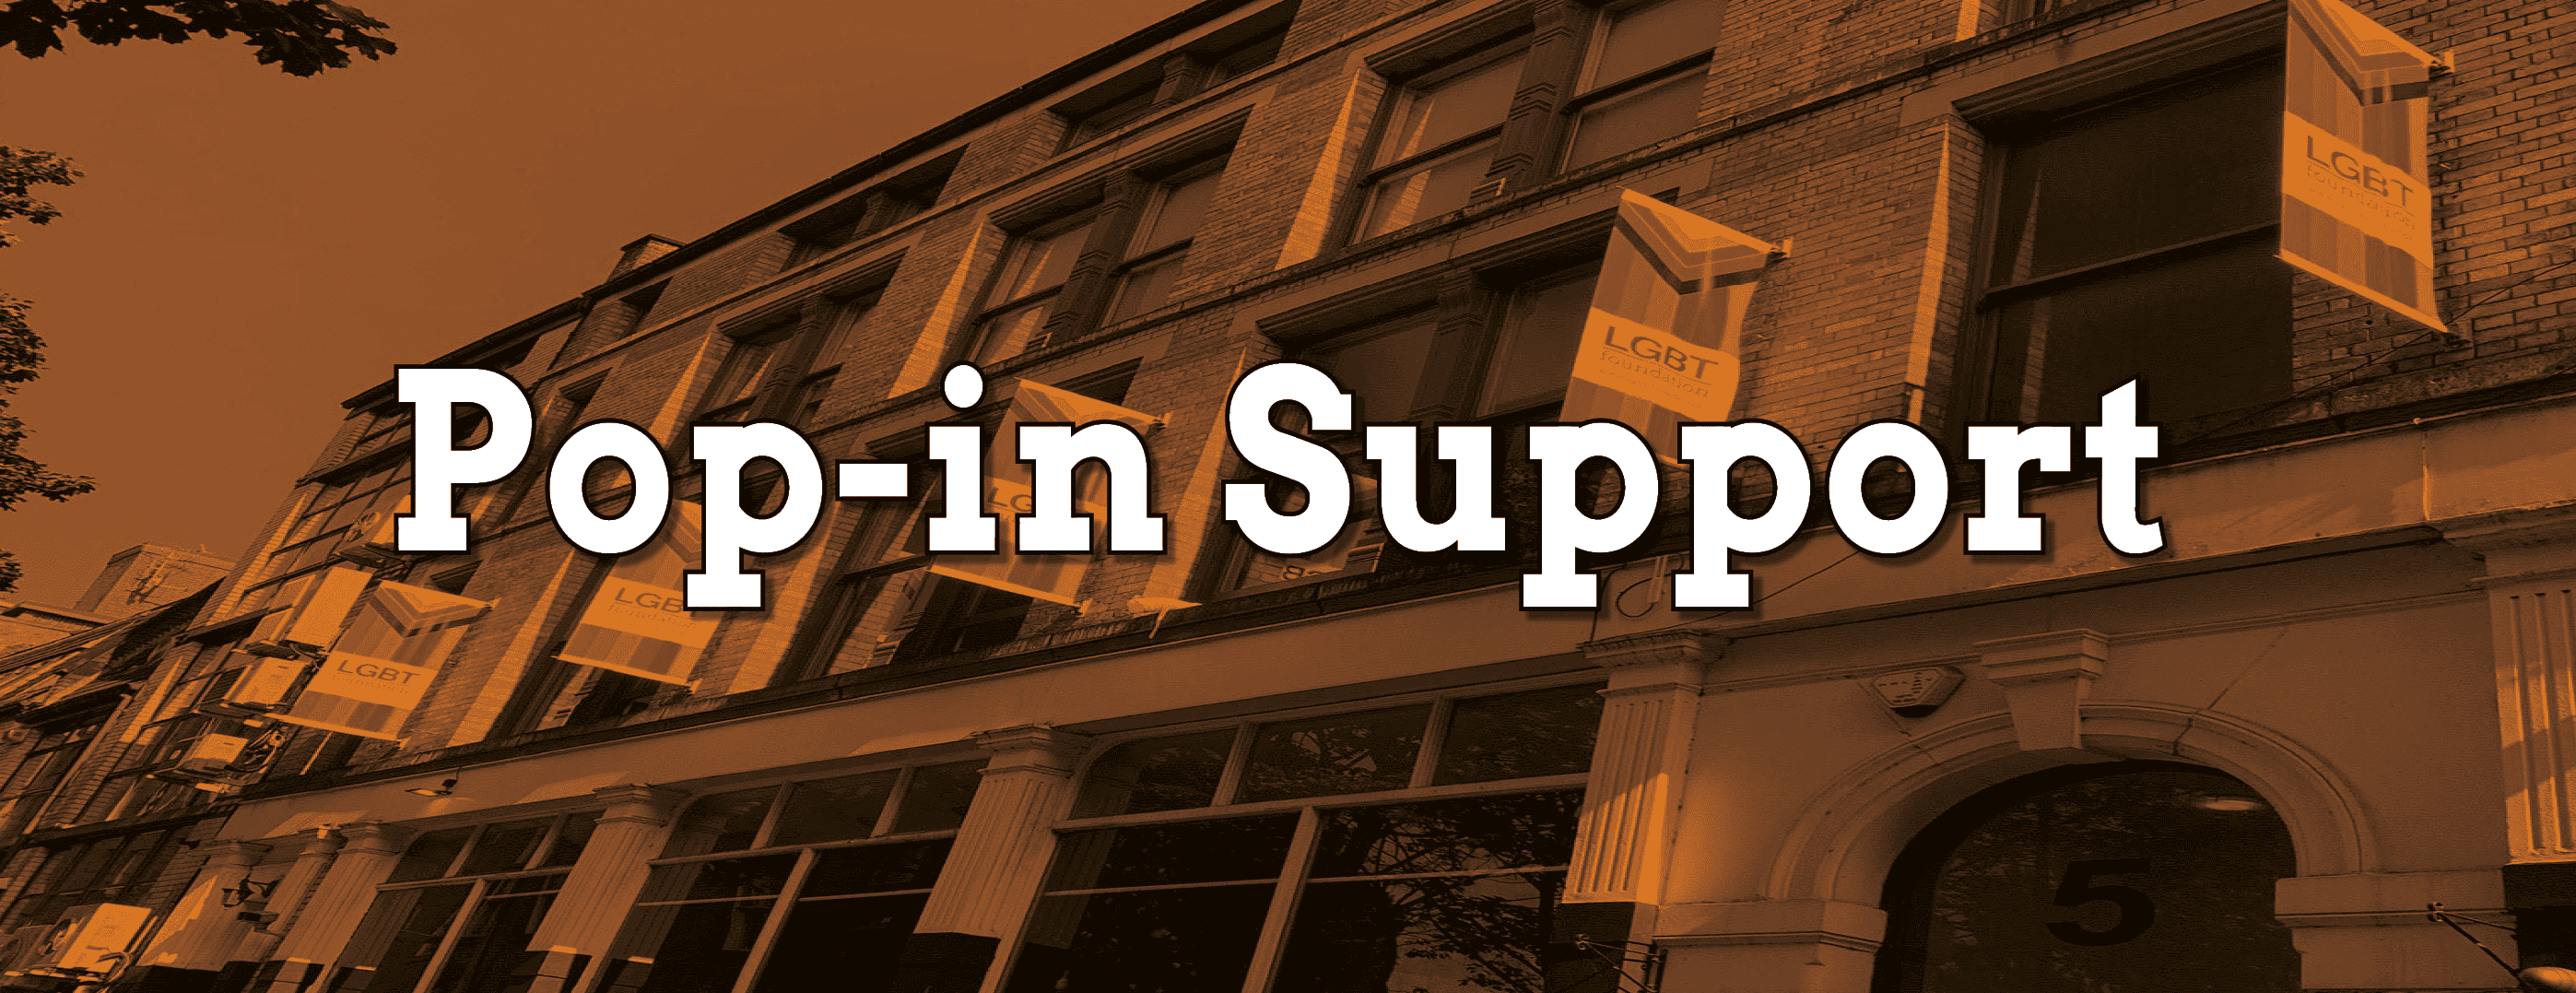 Pop-in Support